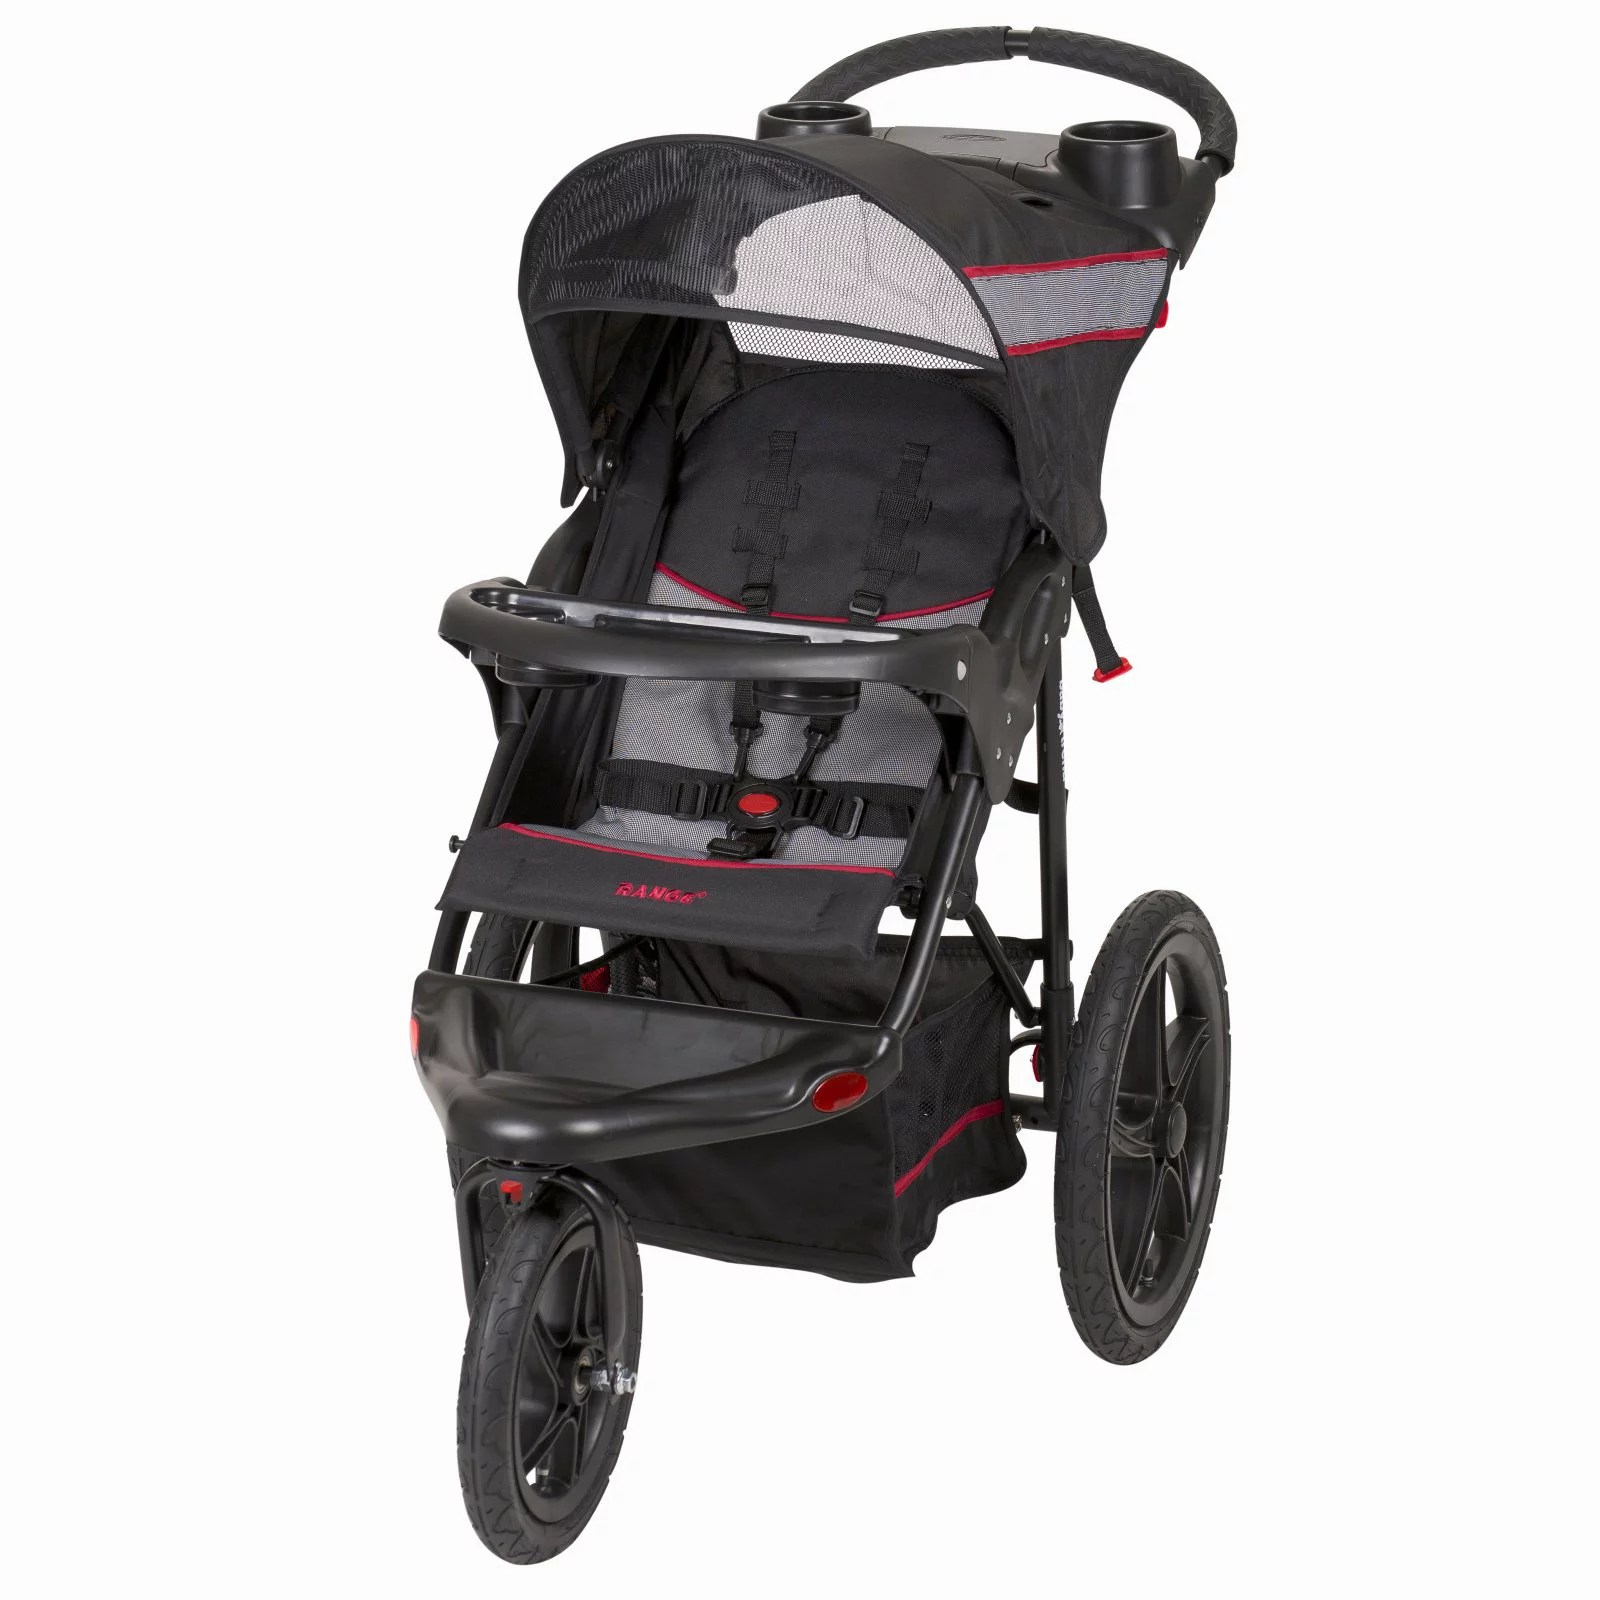 Travel Buggy With Sunroof Baby Trend Range Jogging Stroller Millennium Walmart